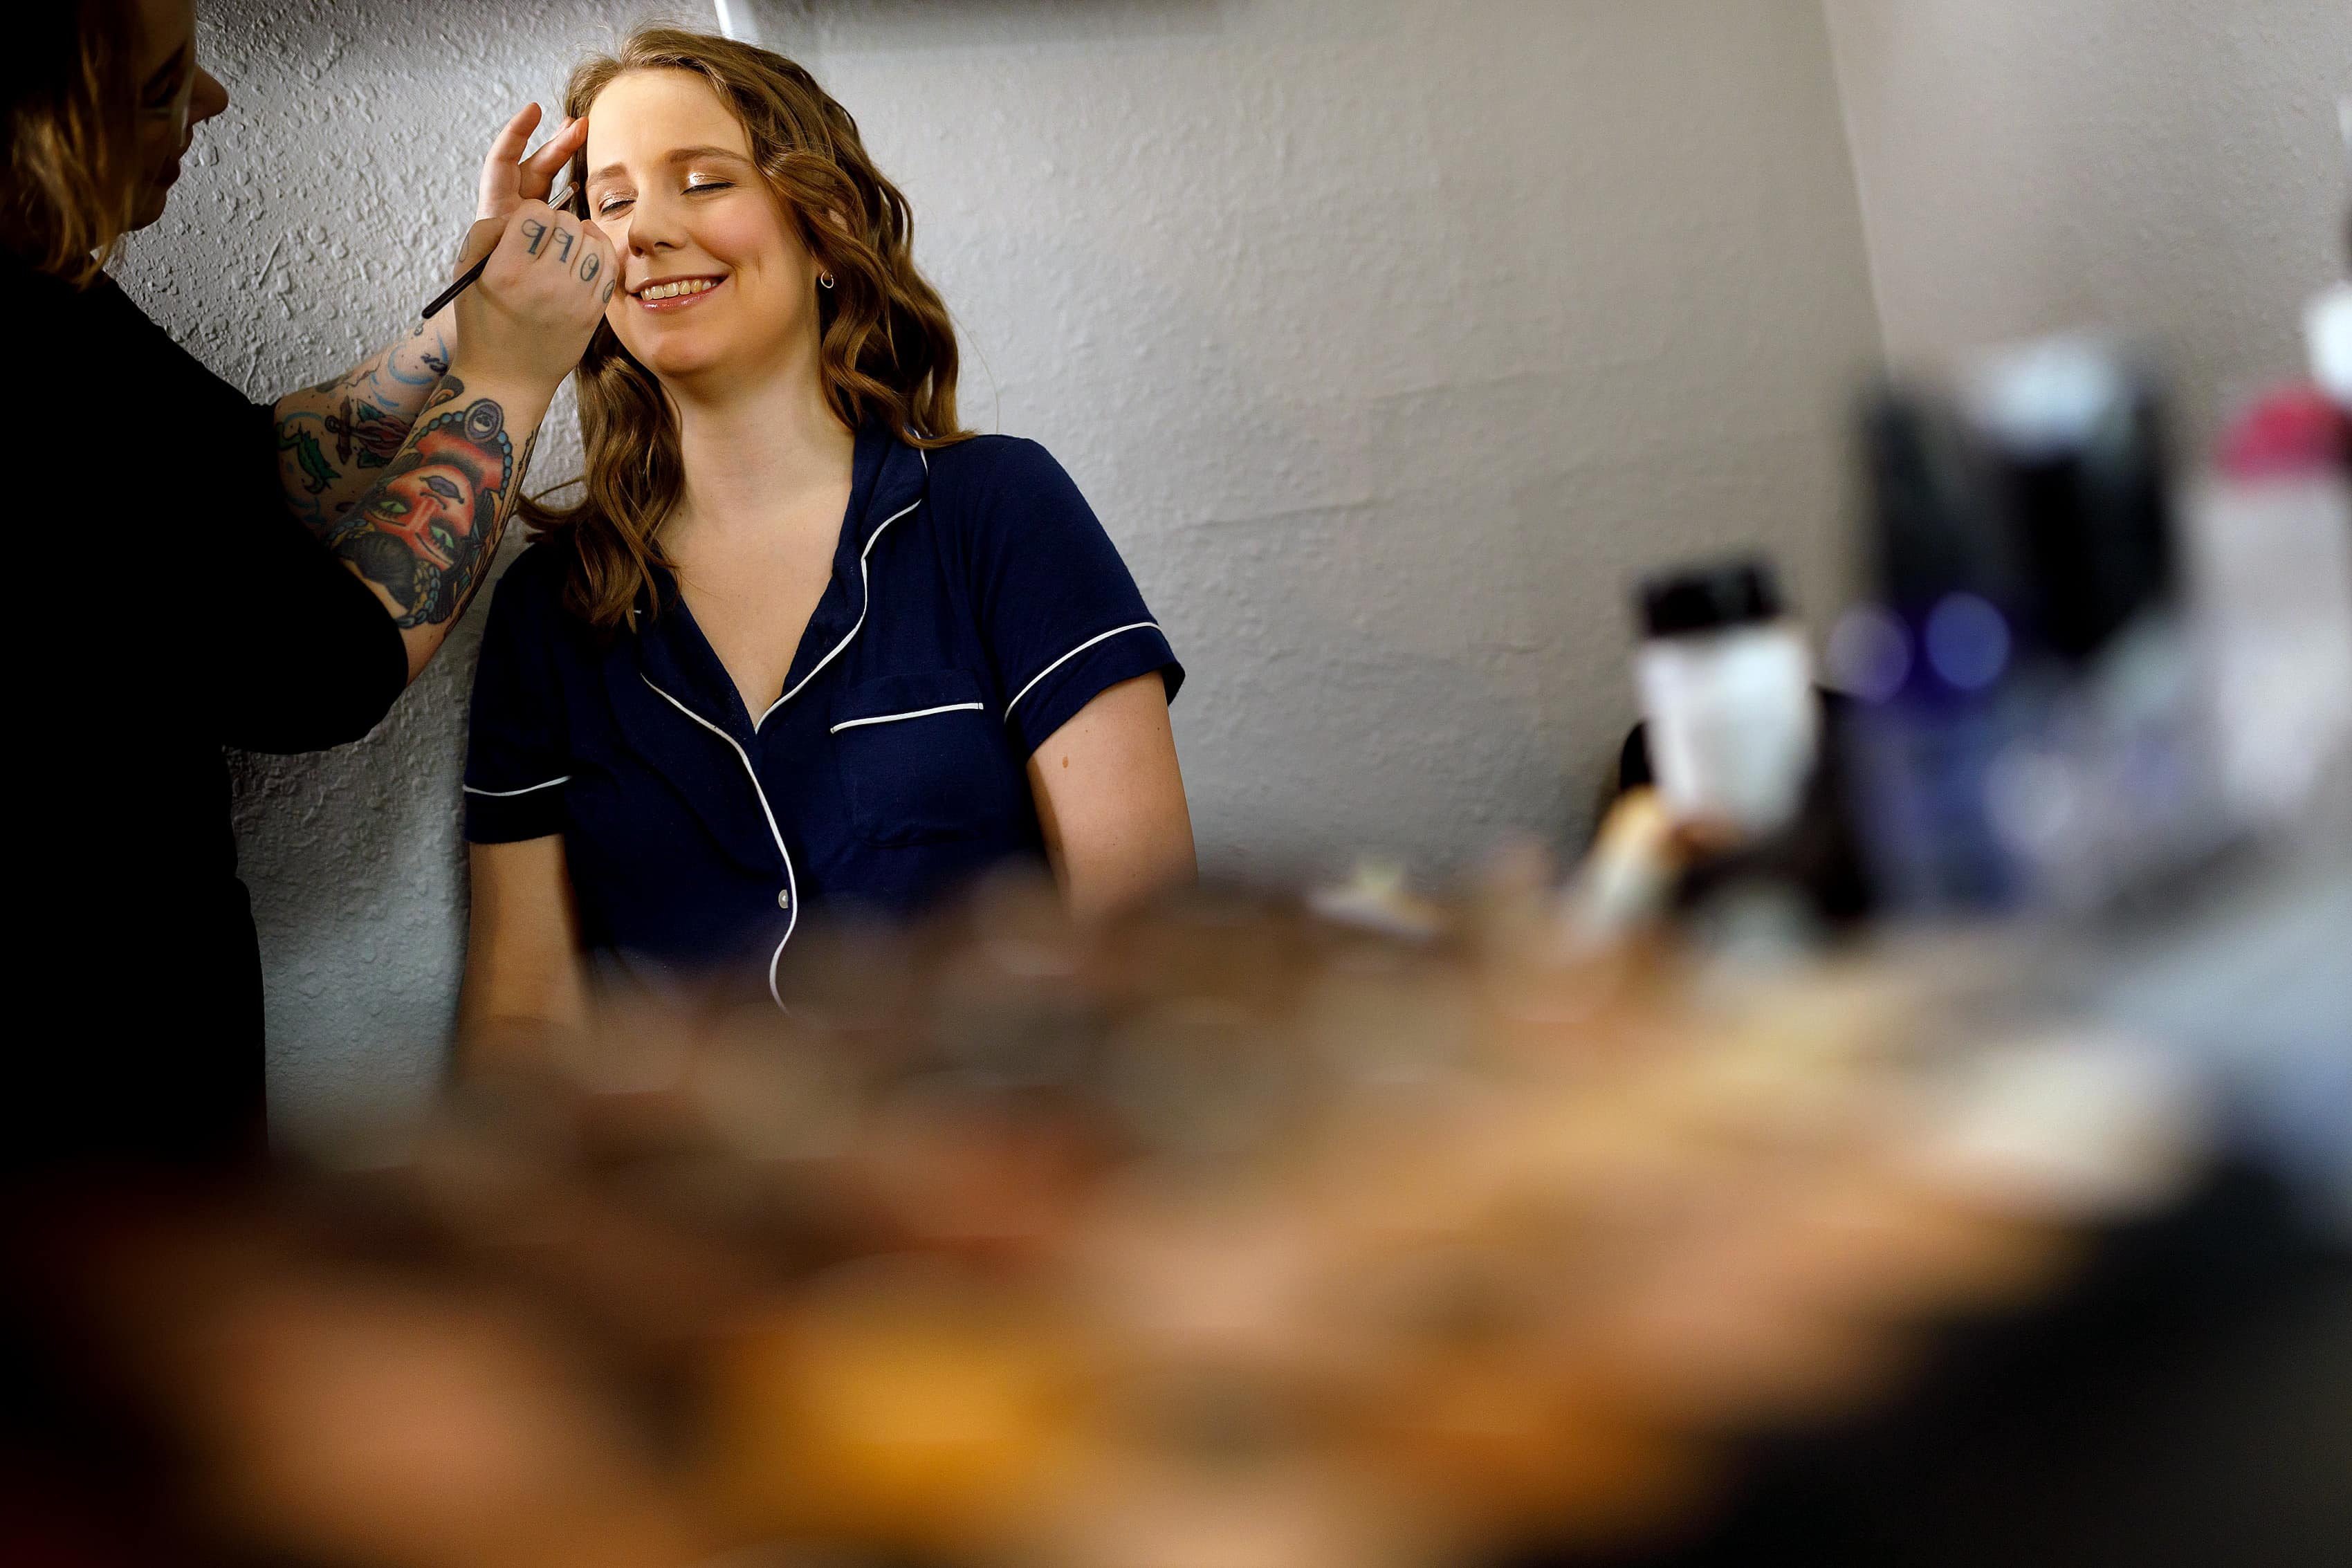 bride has her makeup done while getting ready for wedding